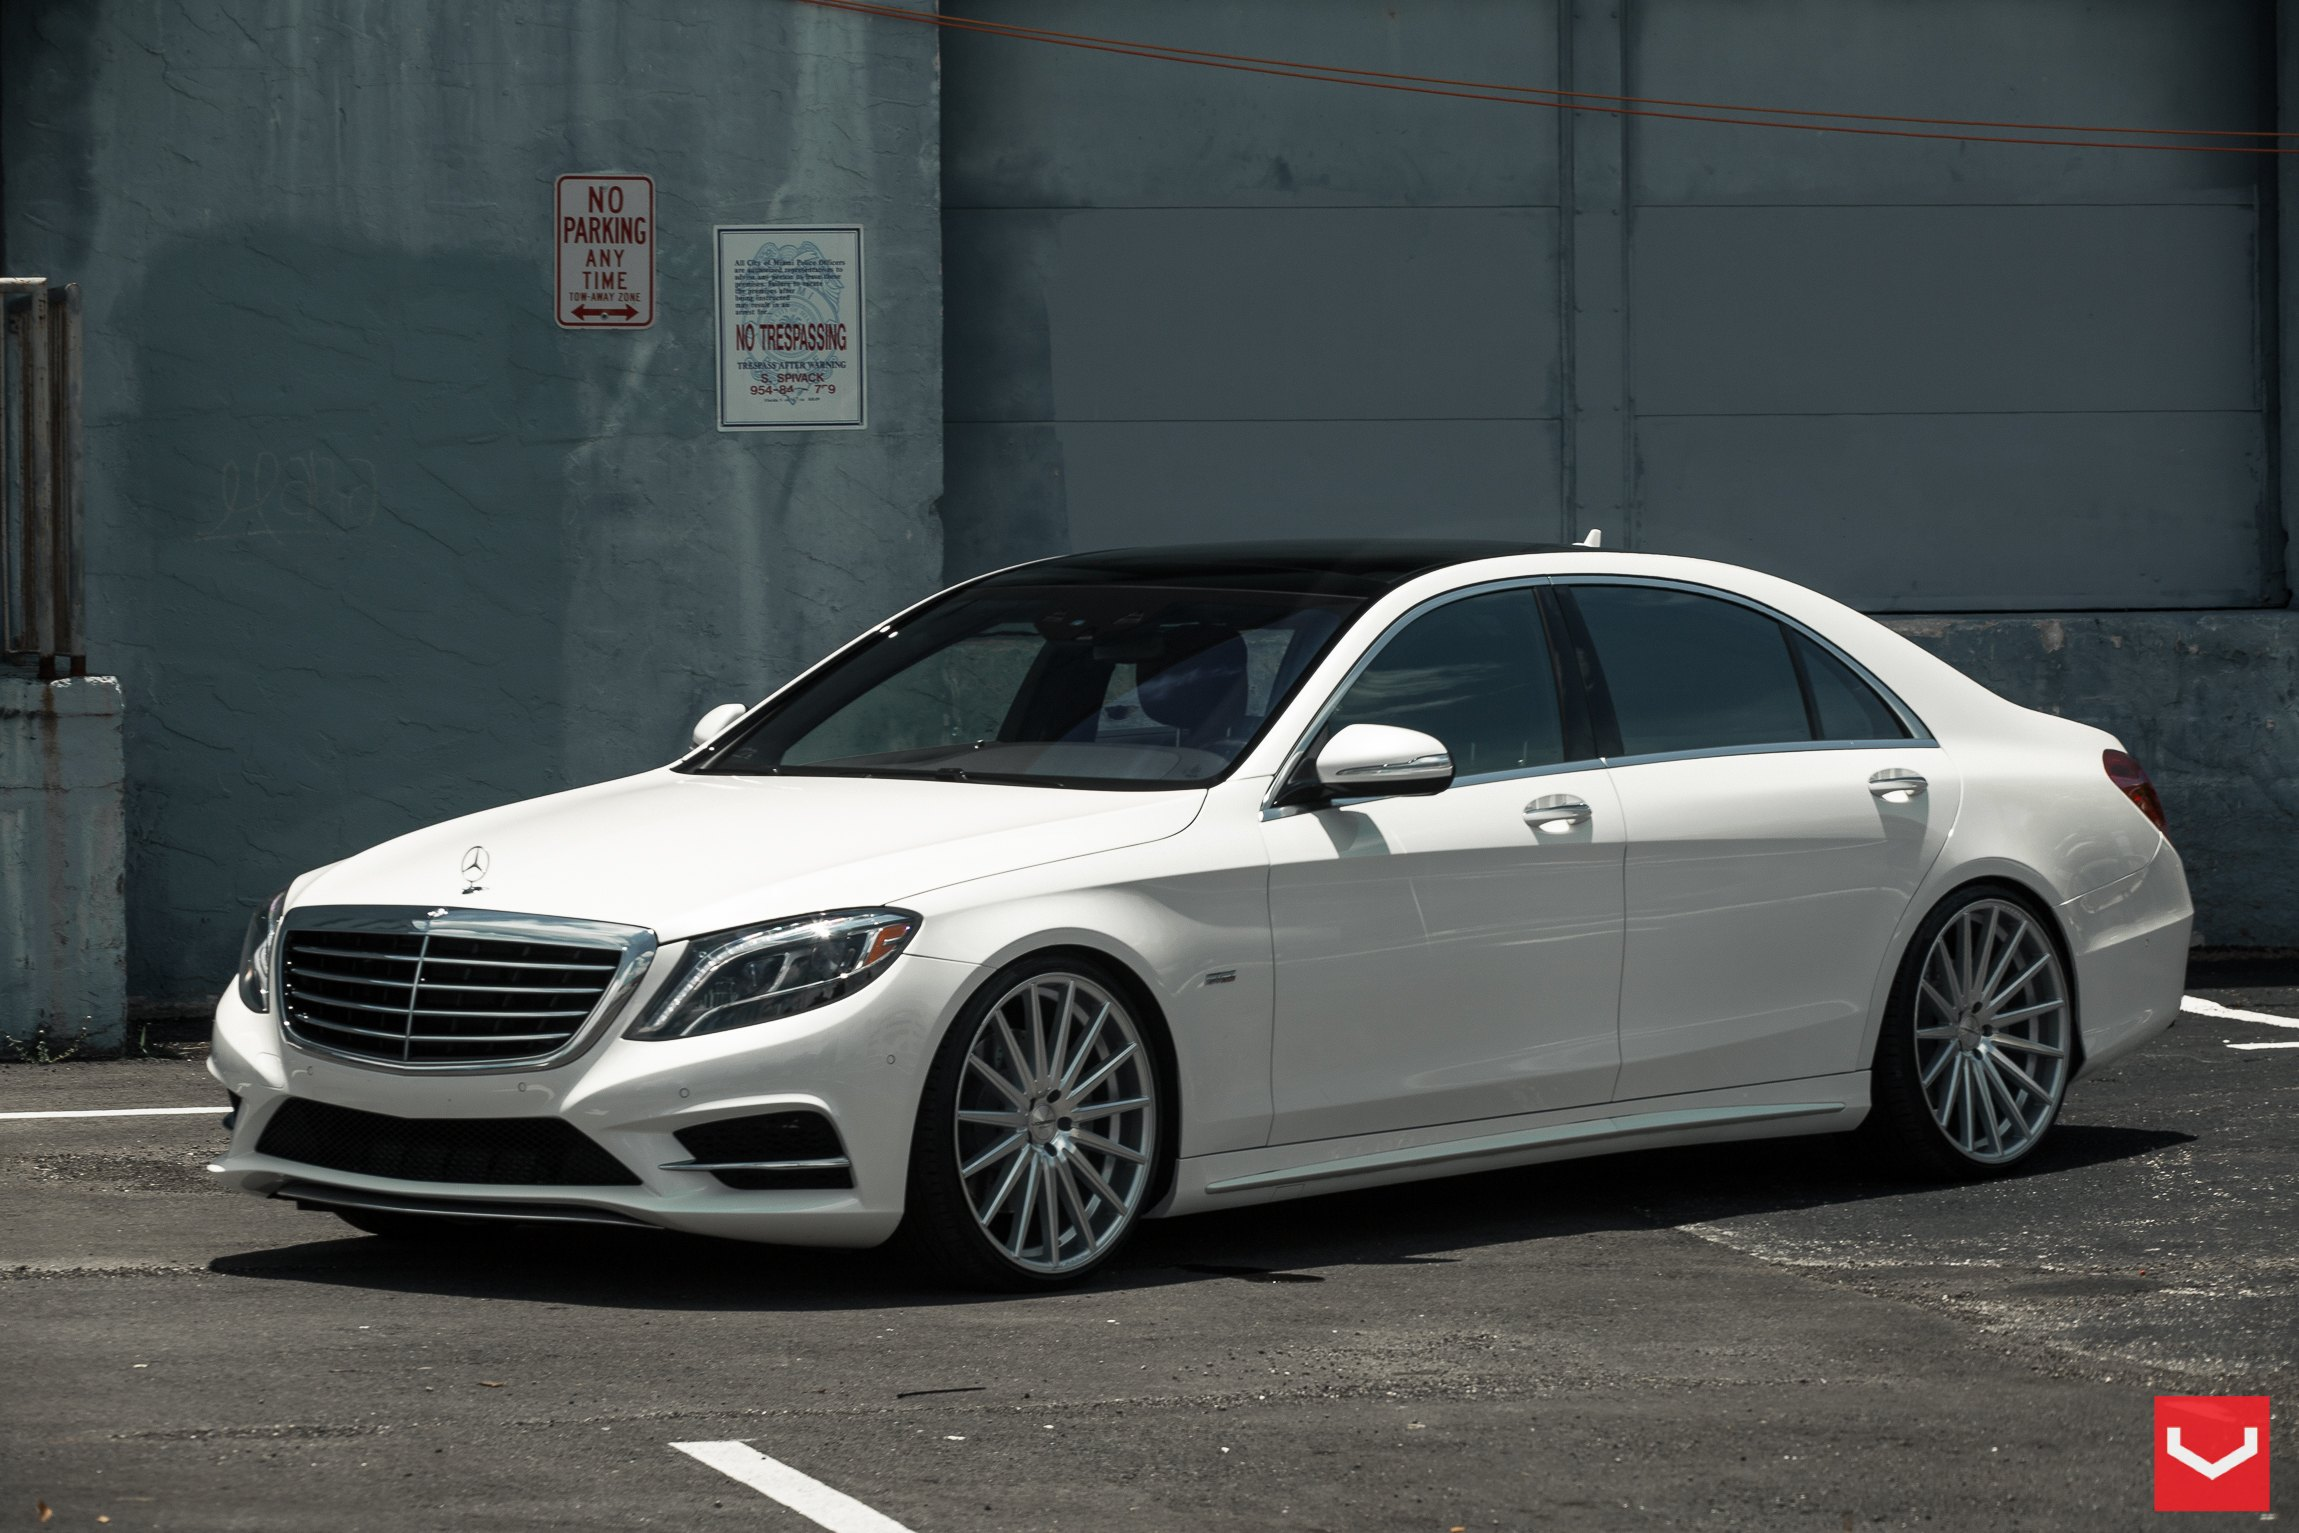 Mercedes S Class Vossen CVT Customer Submissions t